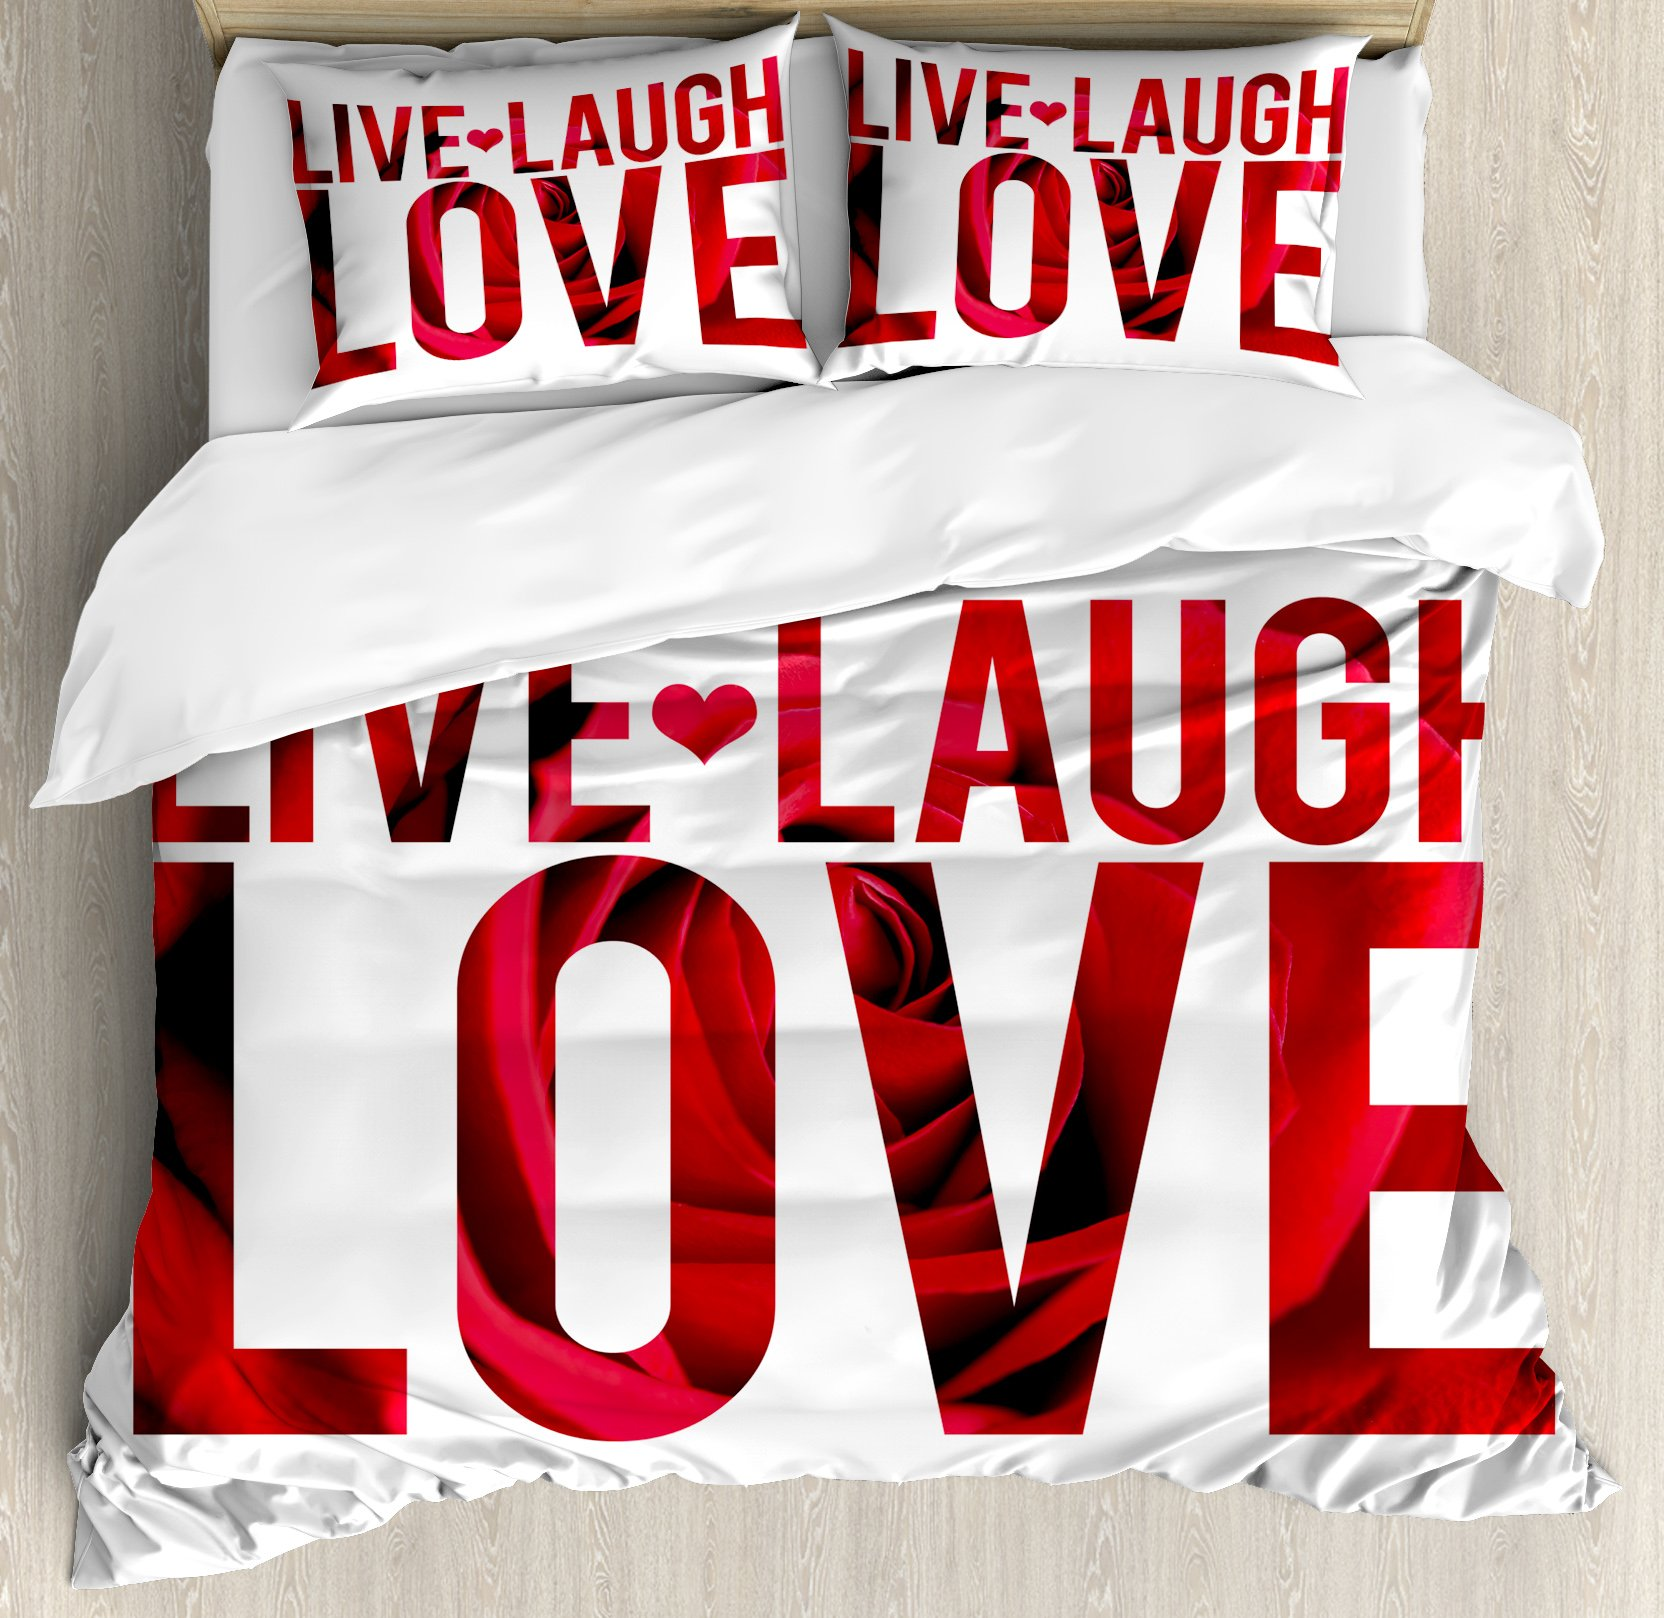 Live Laugh Love Decor Duvet Cover Set King Size by Ambesonne, Typographic Montage Words with Macro Rose Petals Texture Print, Decorative 3 Piece Bedding Set with 2 Pillow Shams, Red White Black